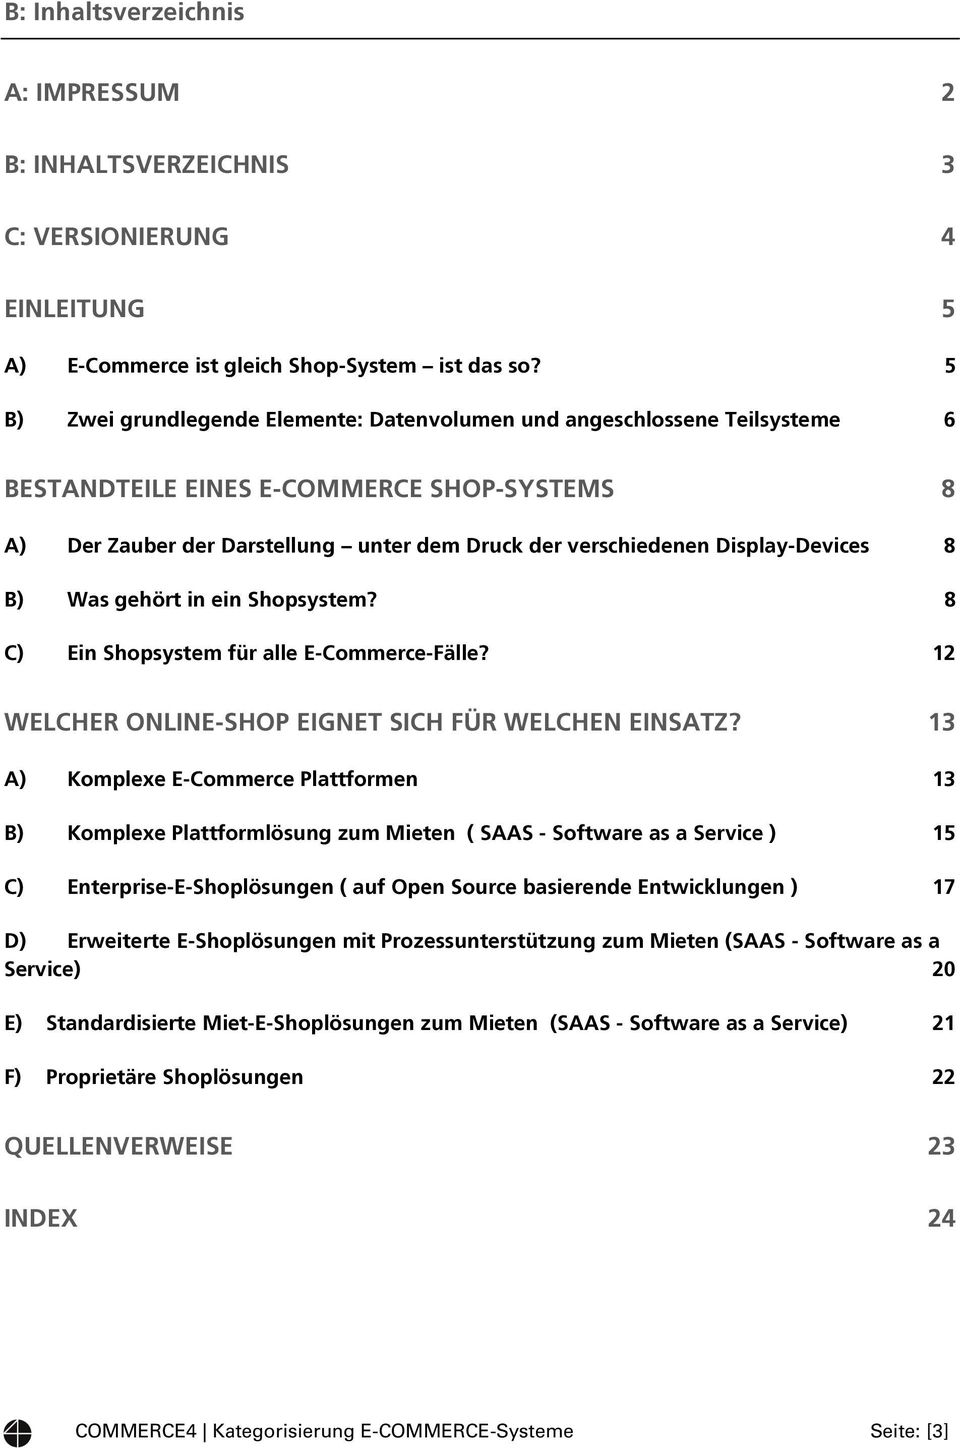 Display-Devices 8 B) Was gehört in ein Shopsystem? 8 C) Ein Shopsystem für alle E-Commerce-Fälle? 12 WELCHER ONLINE-SHOP EIGNET SICH FÜR WELCHEN EINSATZ?